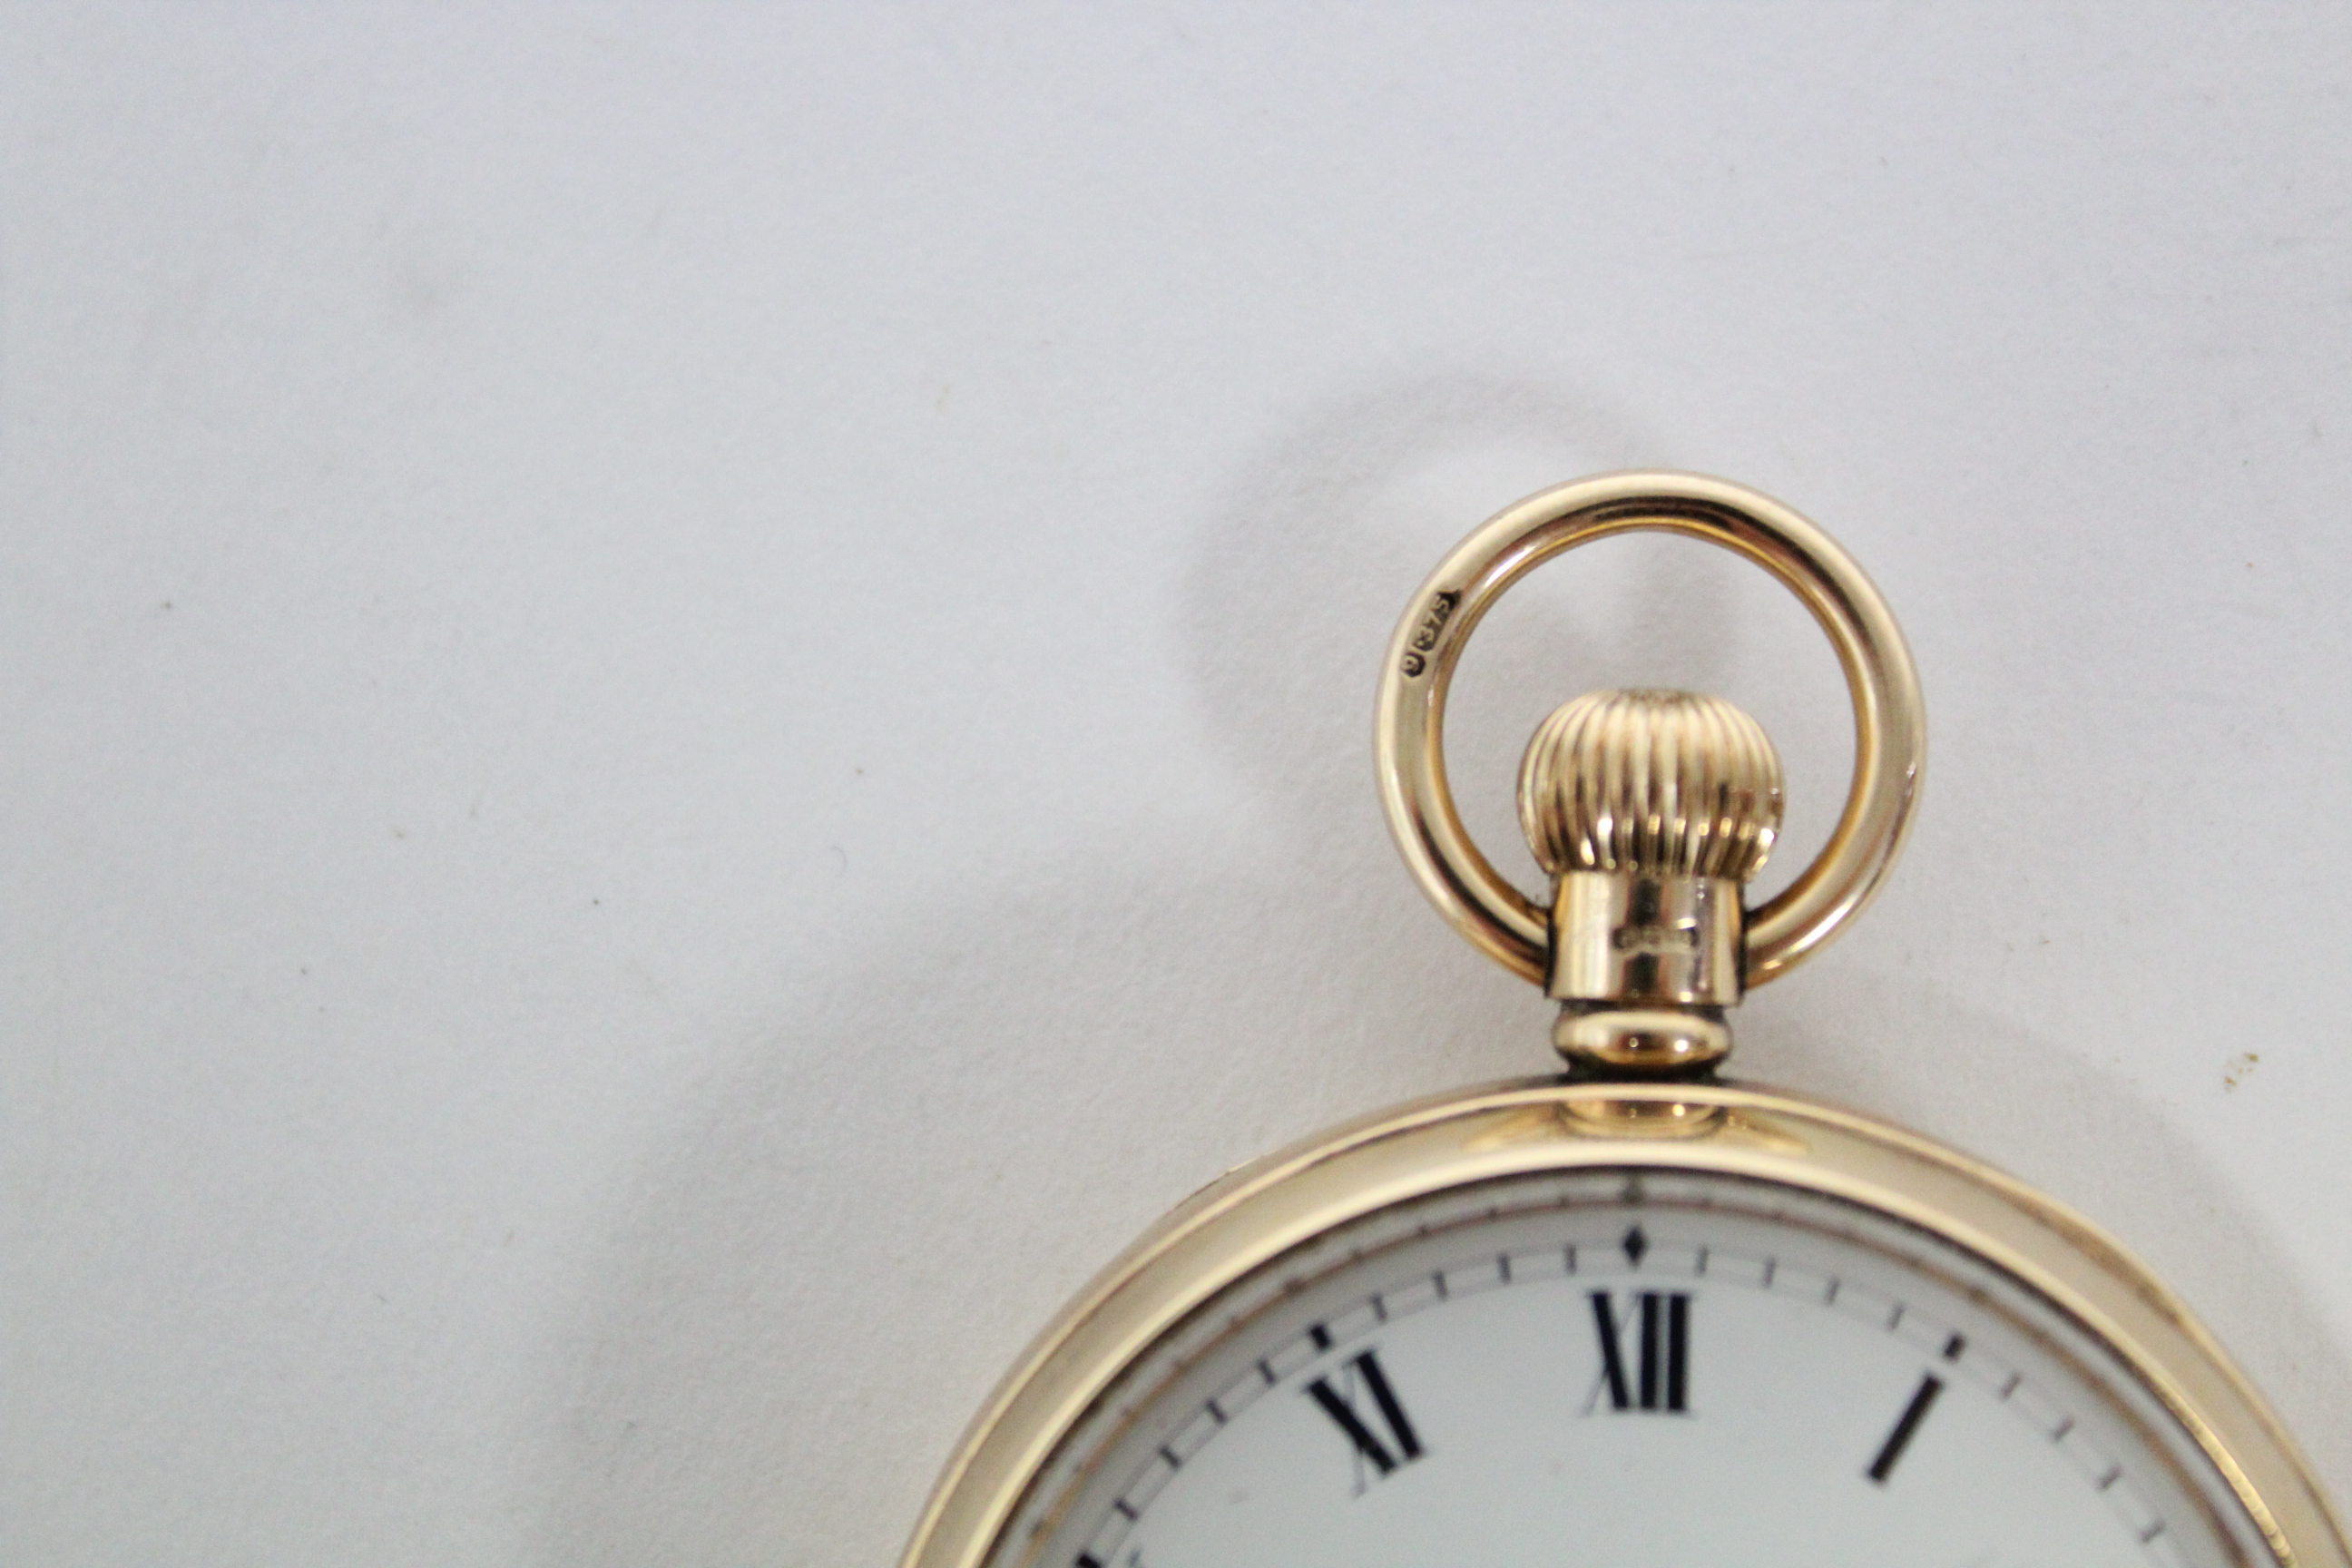 A 9ct. gold cased gent's open-face pocket watch, the white enamel dial with black roman numerals & - Image 2 of 7